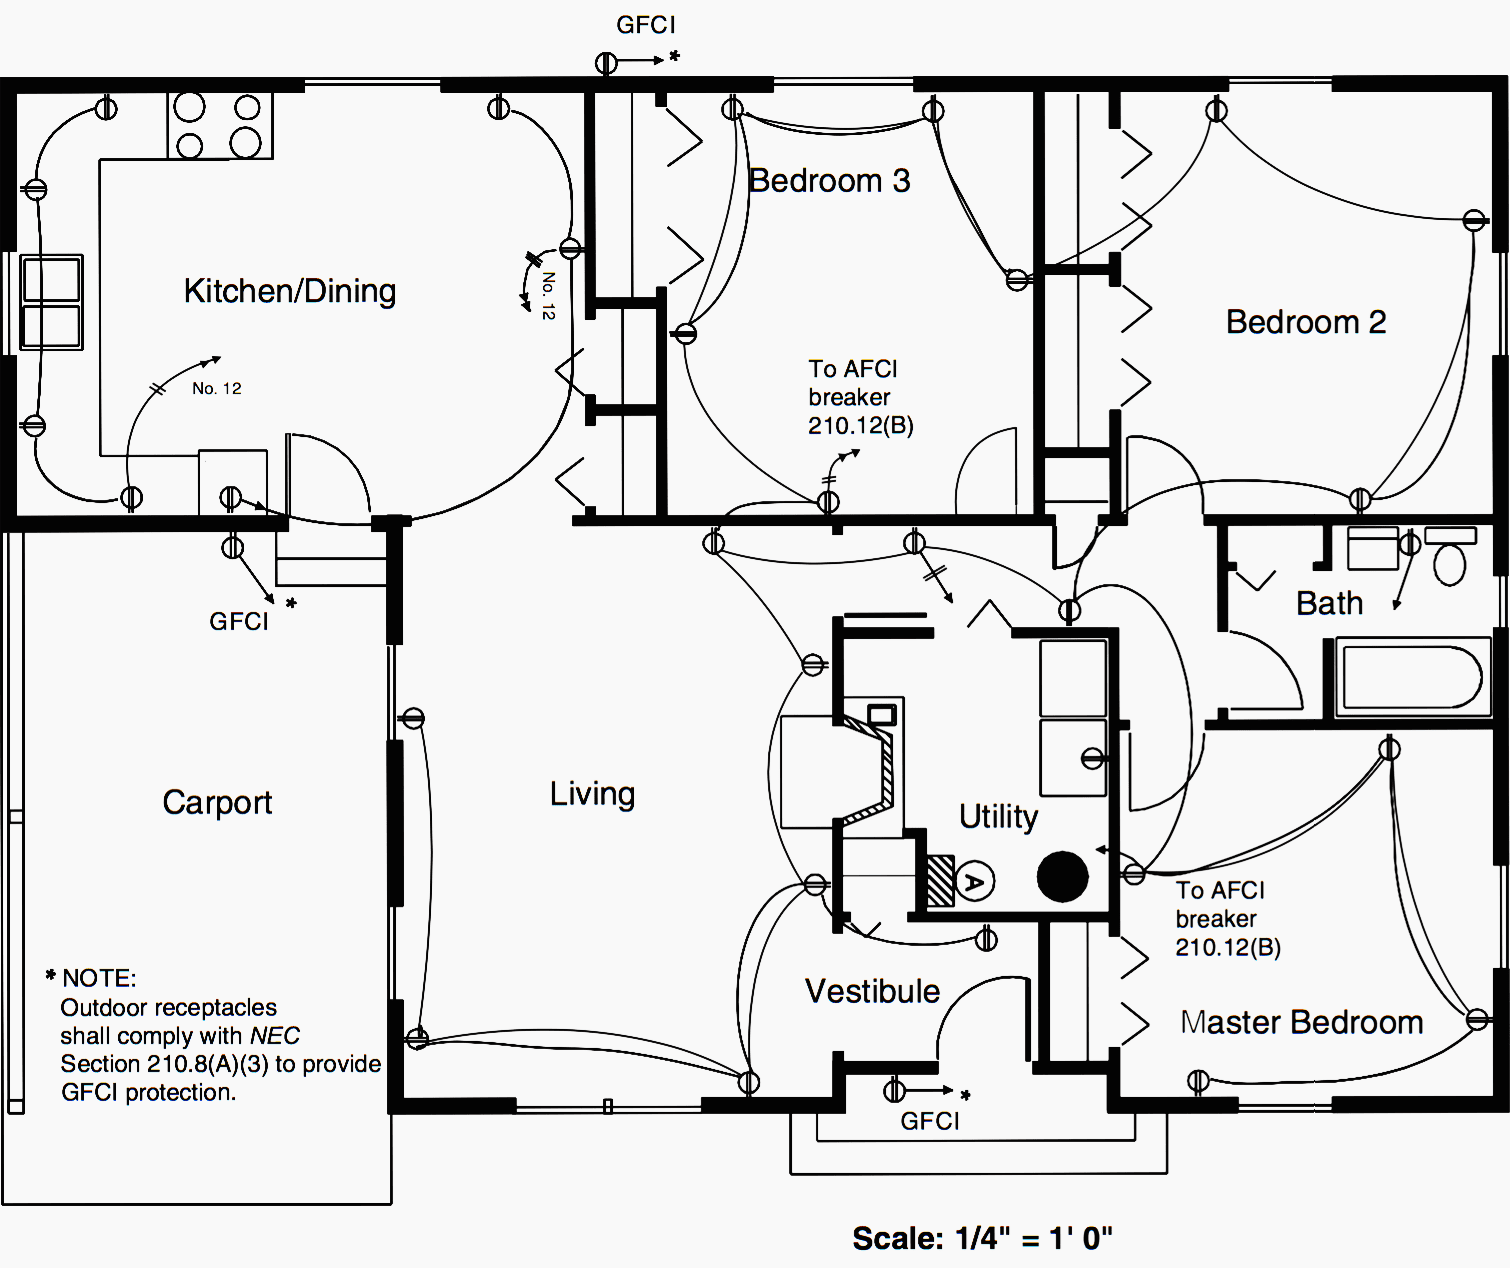 how to read electrical drawings tutorvista answers